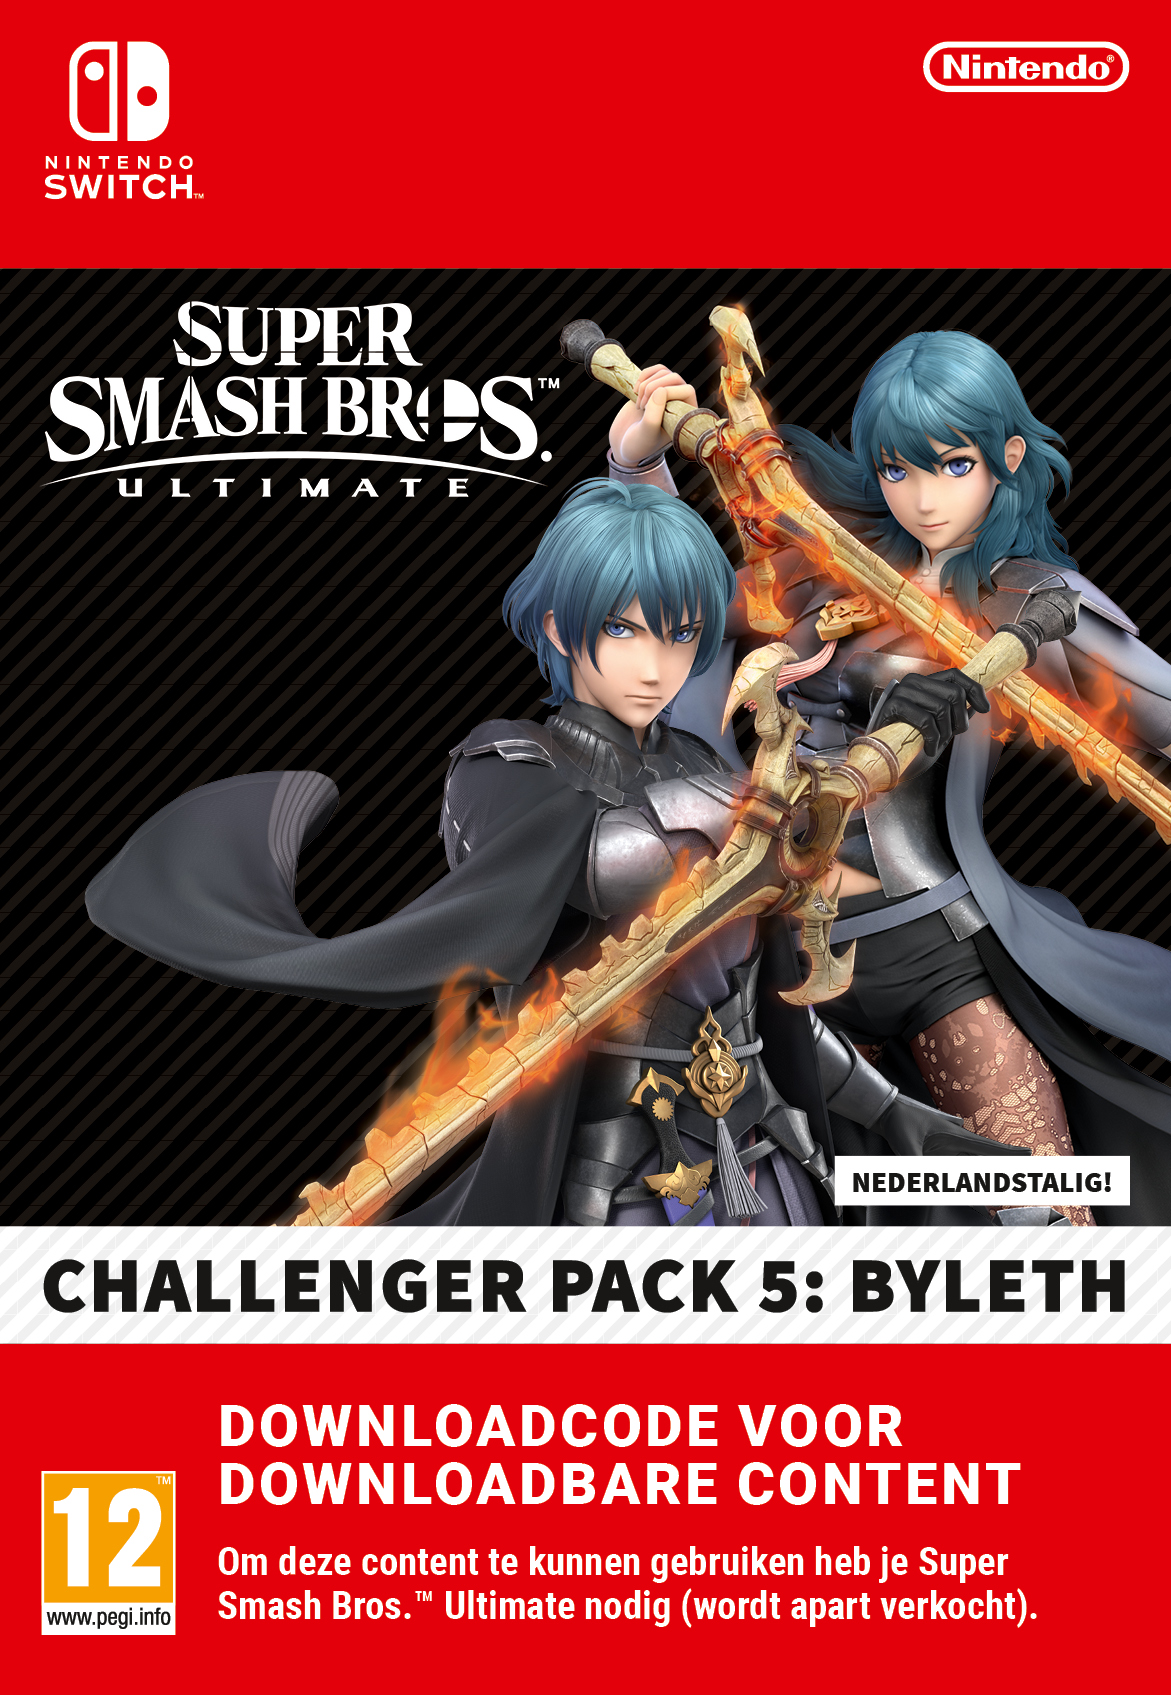 Super Smash Bros. Ultimate: Byleth Challenger Pack 5